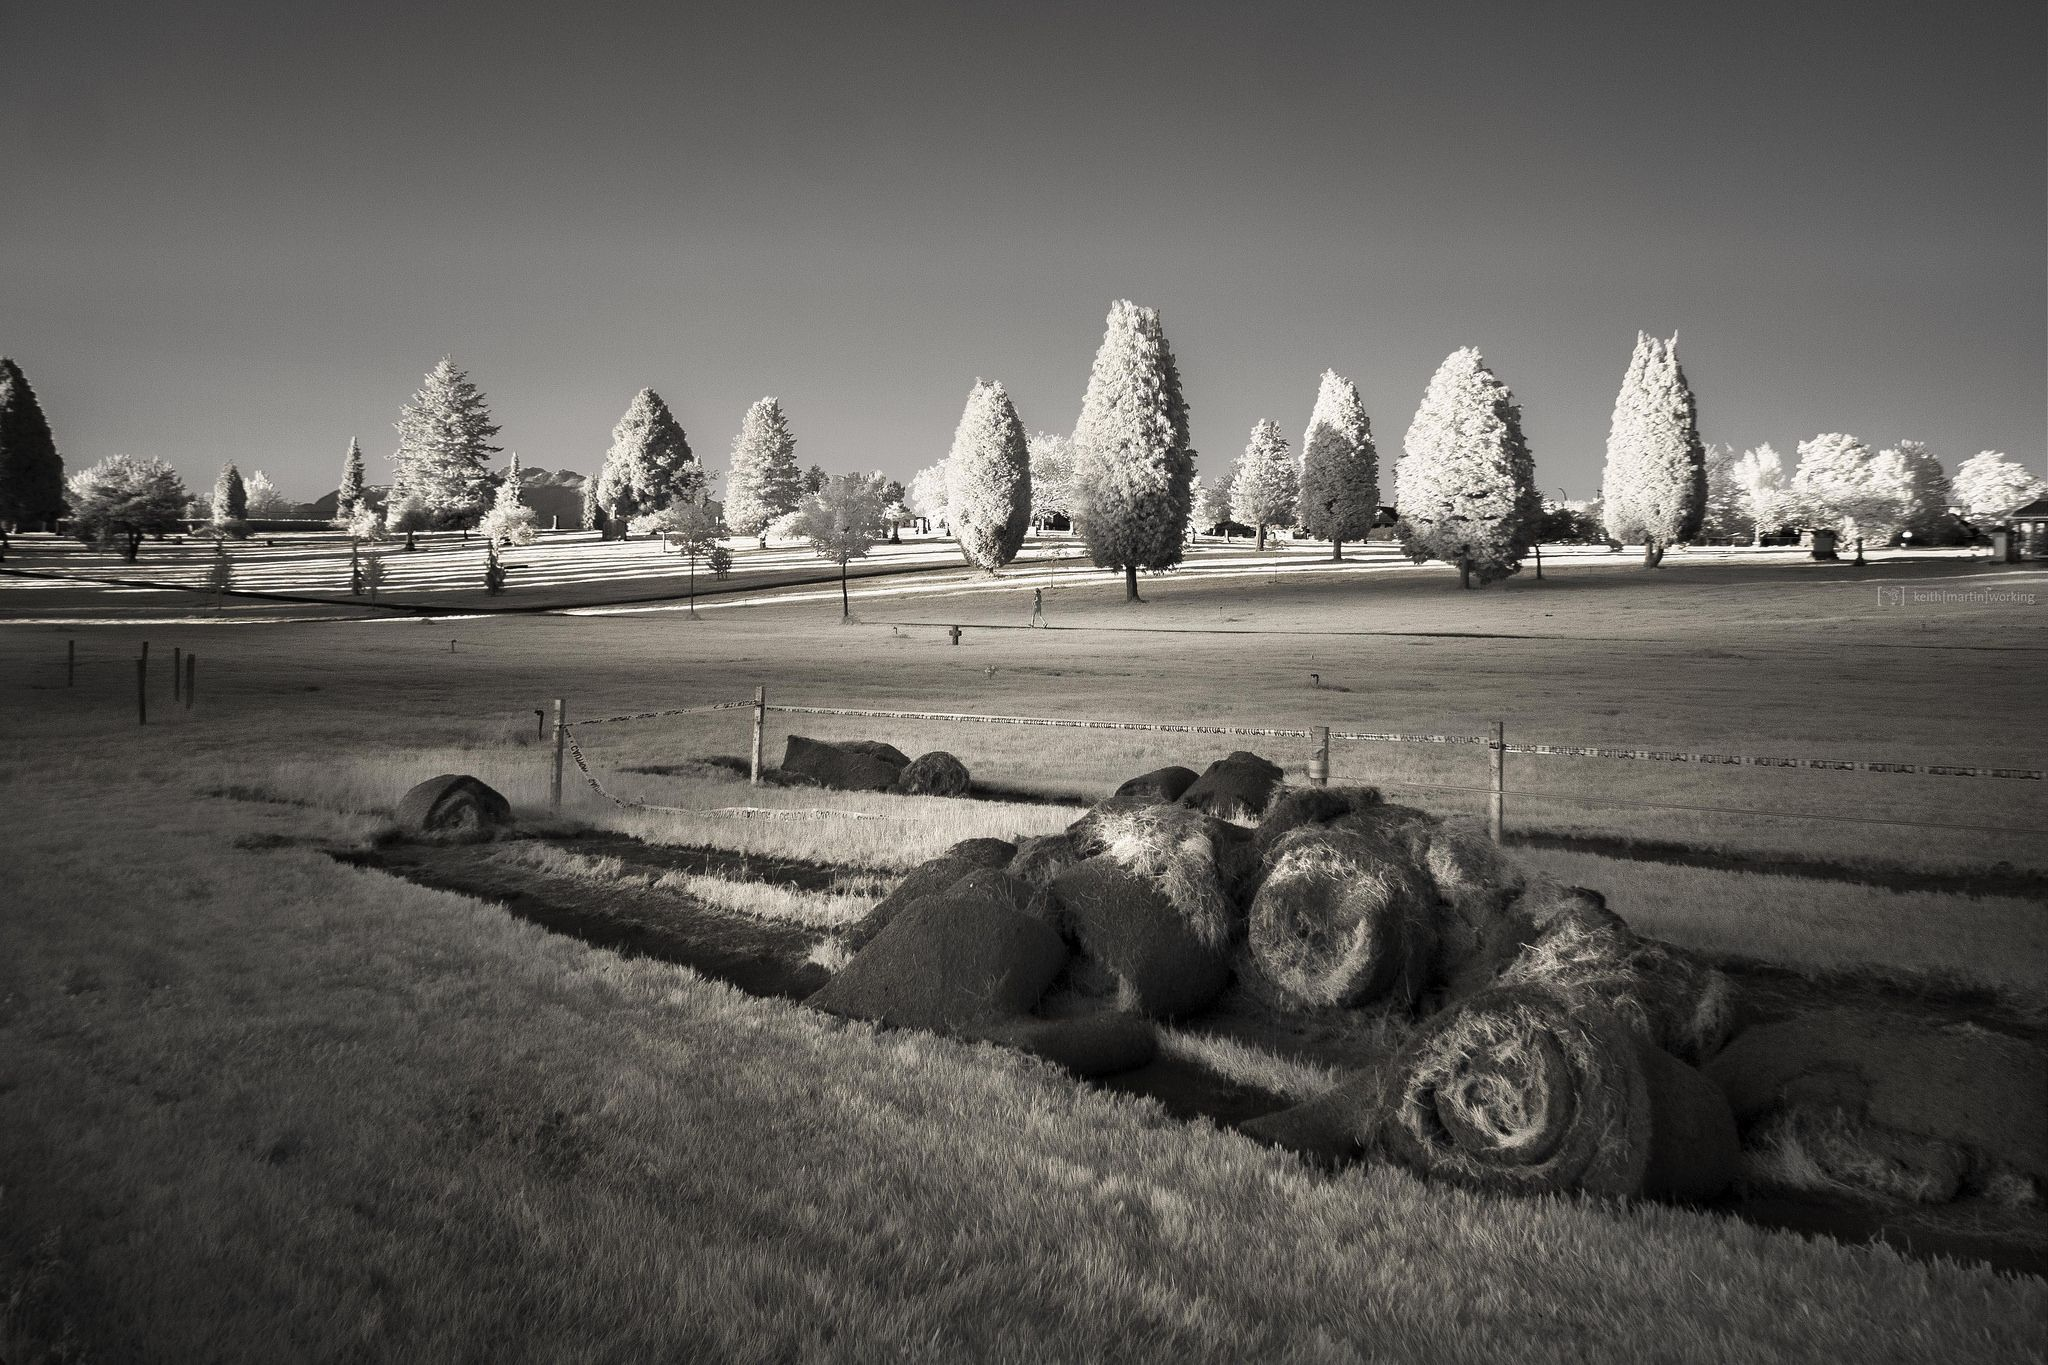 https://flic.kr/p/JCo5kZ   evening roll   Olympus Pen E-PM1 converted with 590nm infrared filter Panasonic Lumix G 14mm f2.5 Panorama with 4 vertical frames